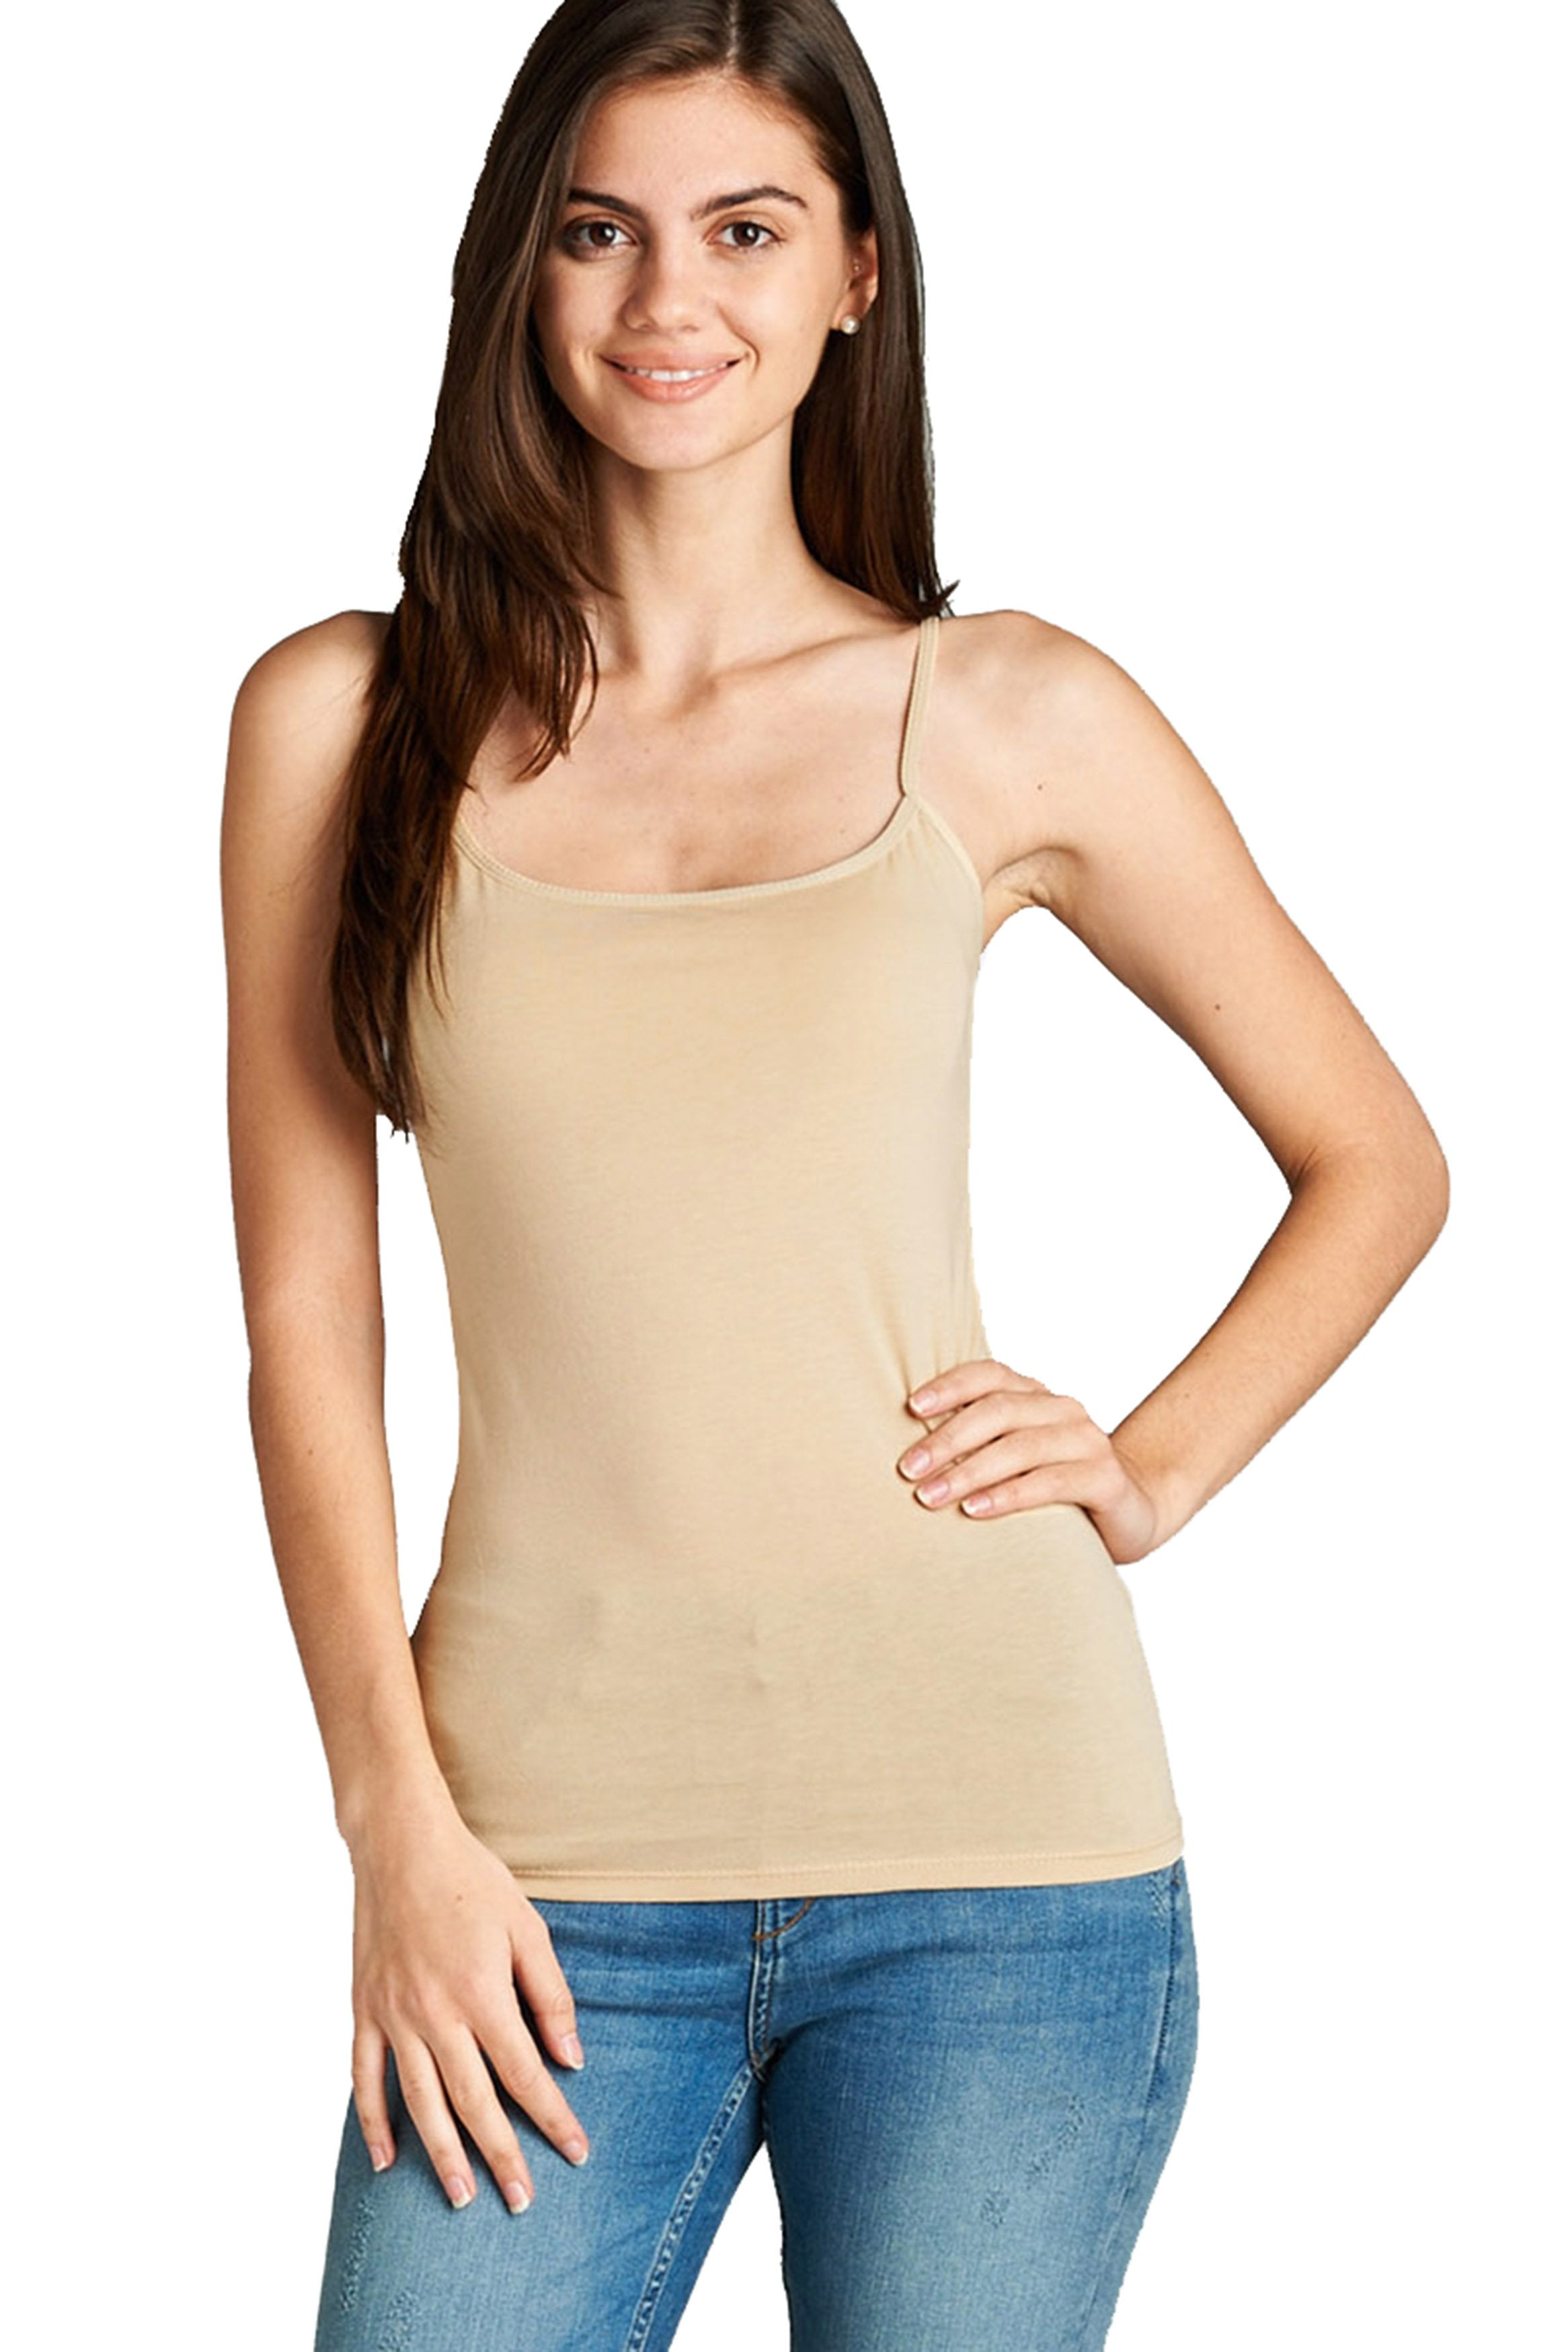 Womens Tank Tops with Built in Bra Adjustable Spaghetti Strap Camisole